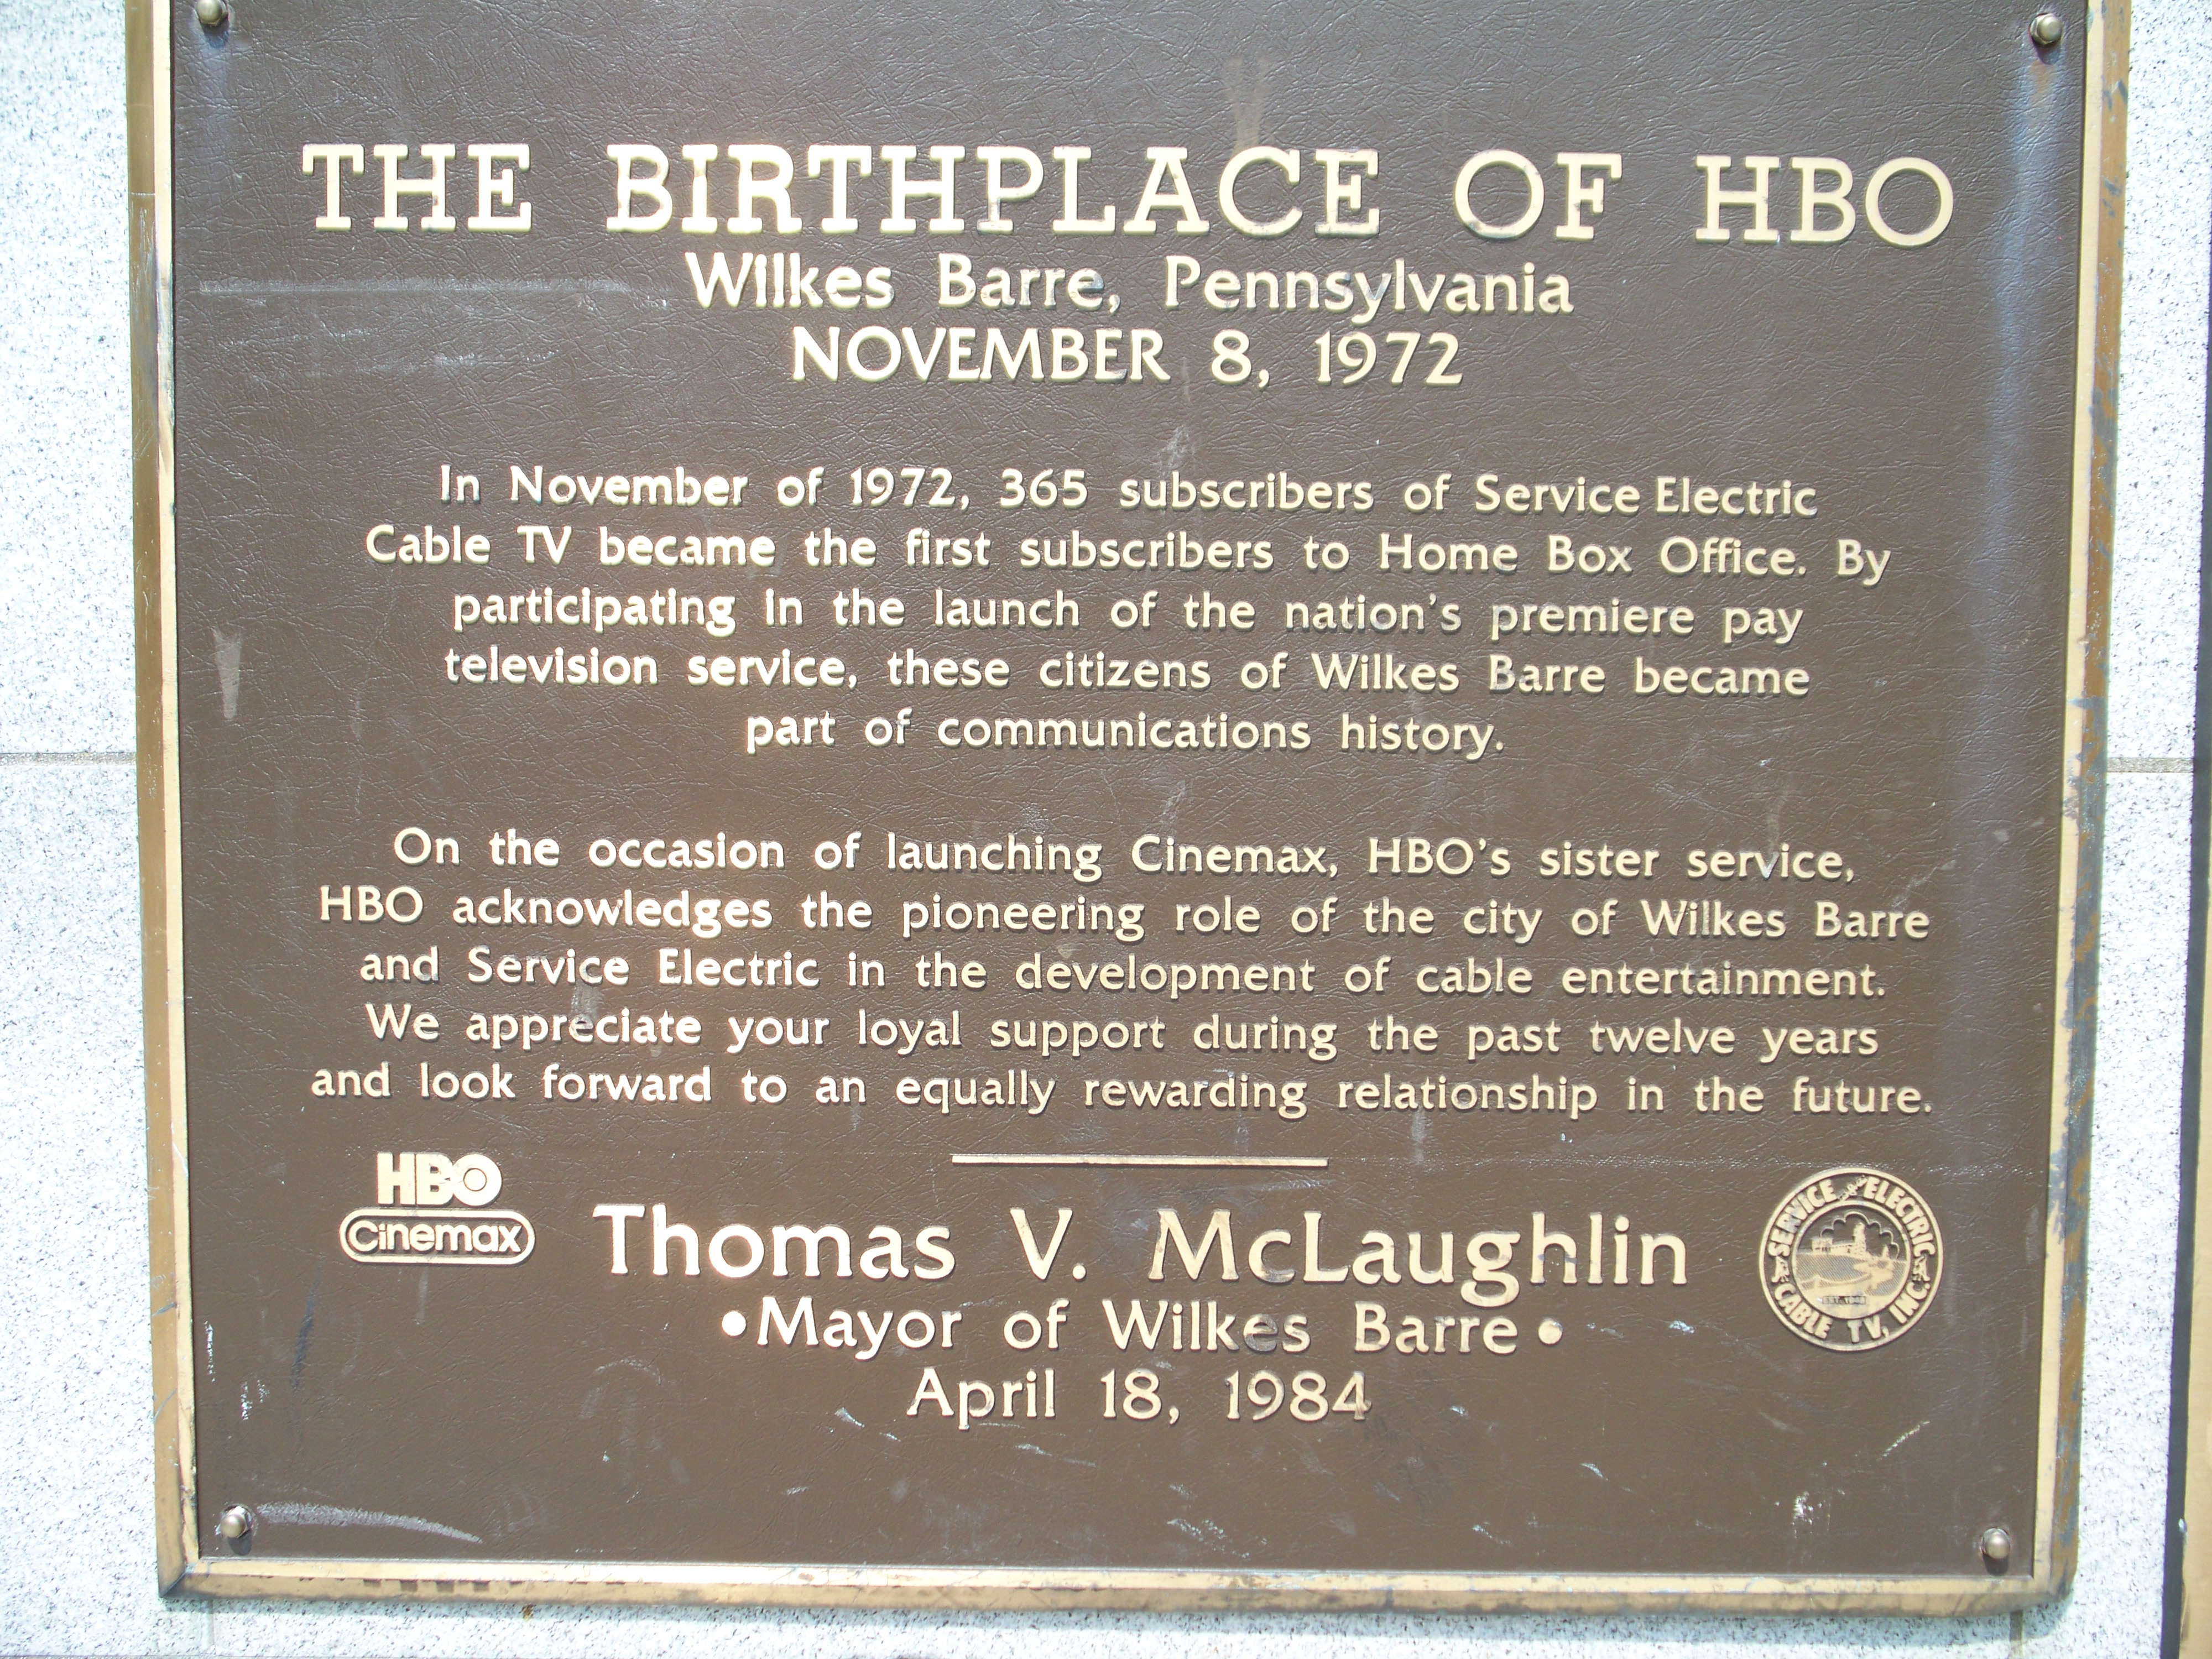 HBO Plaque in Wilkes-Barre